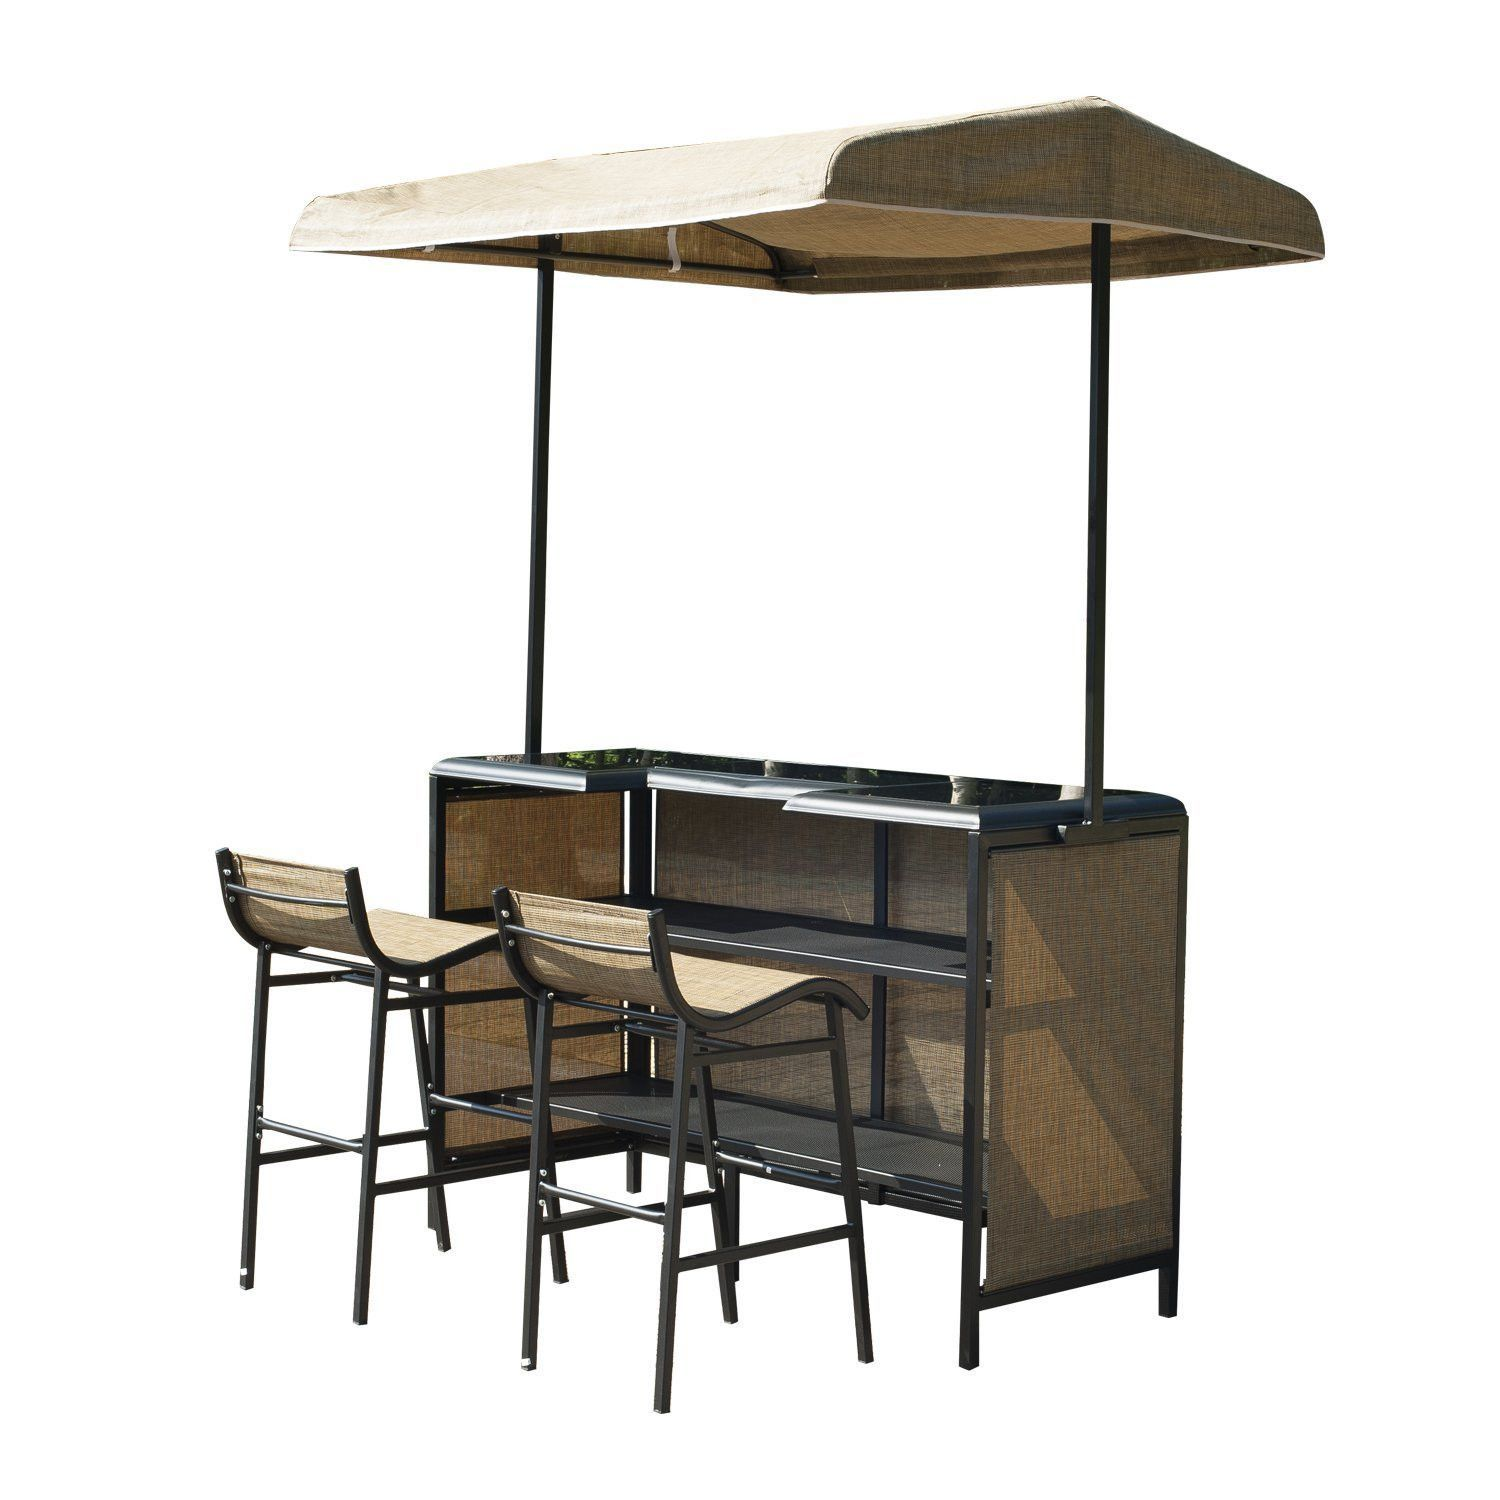 Outdoor 3 Piece Mesh Cloth Canopy Bar Set Table U0026 Two Chairs Shade Deck  Poolside Patio